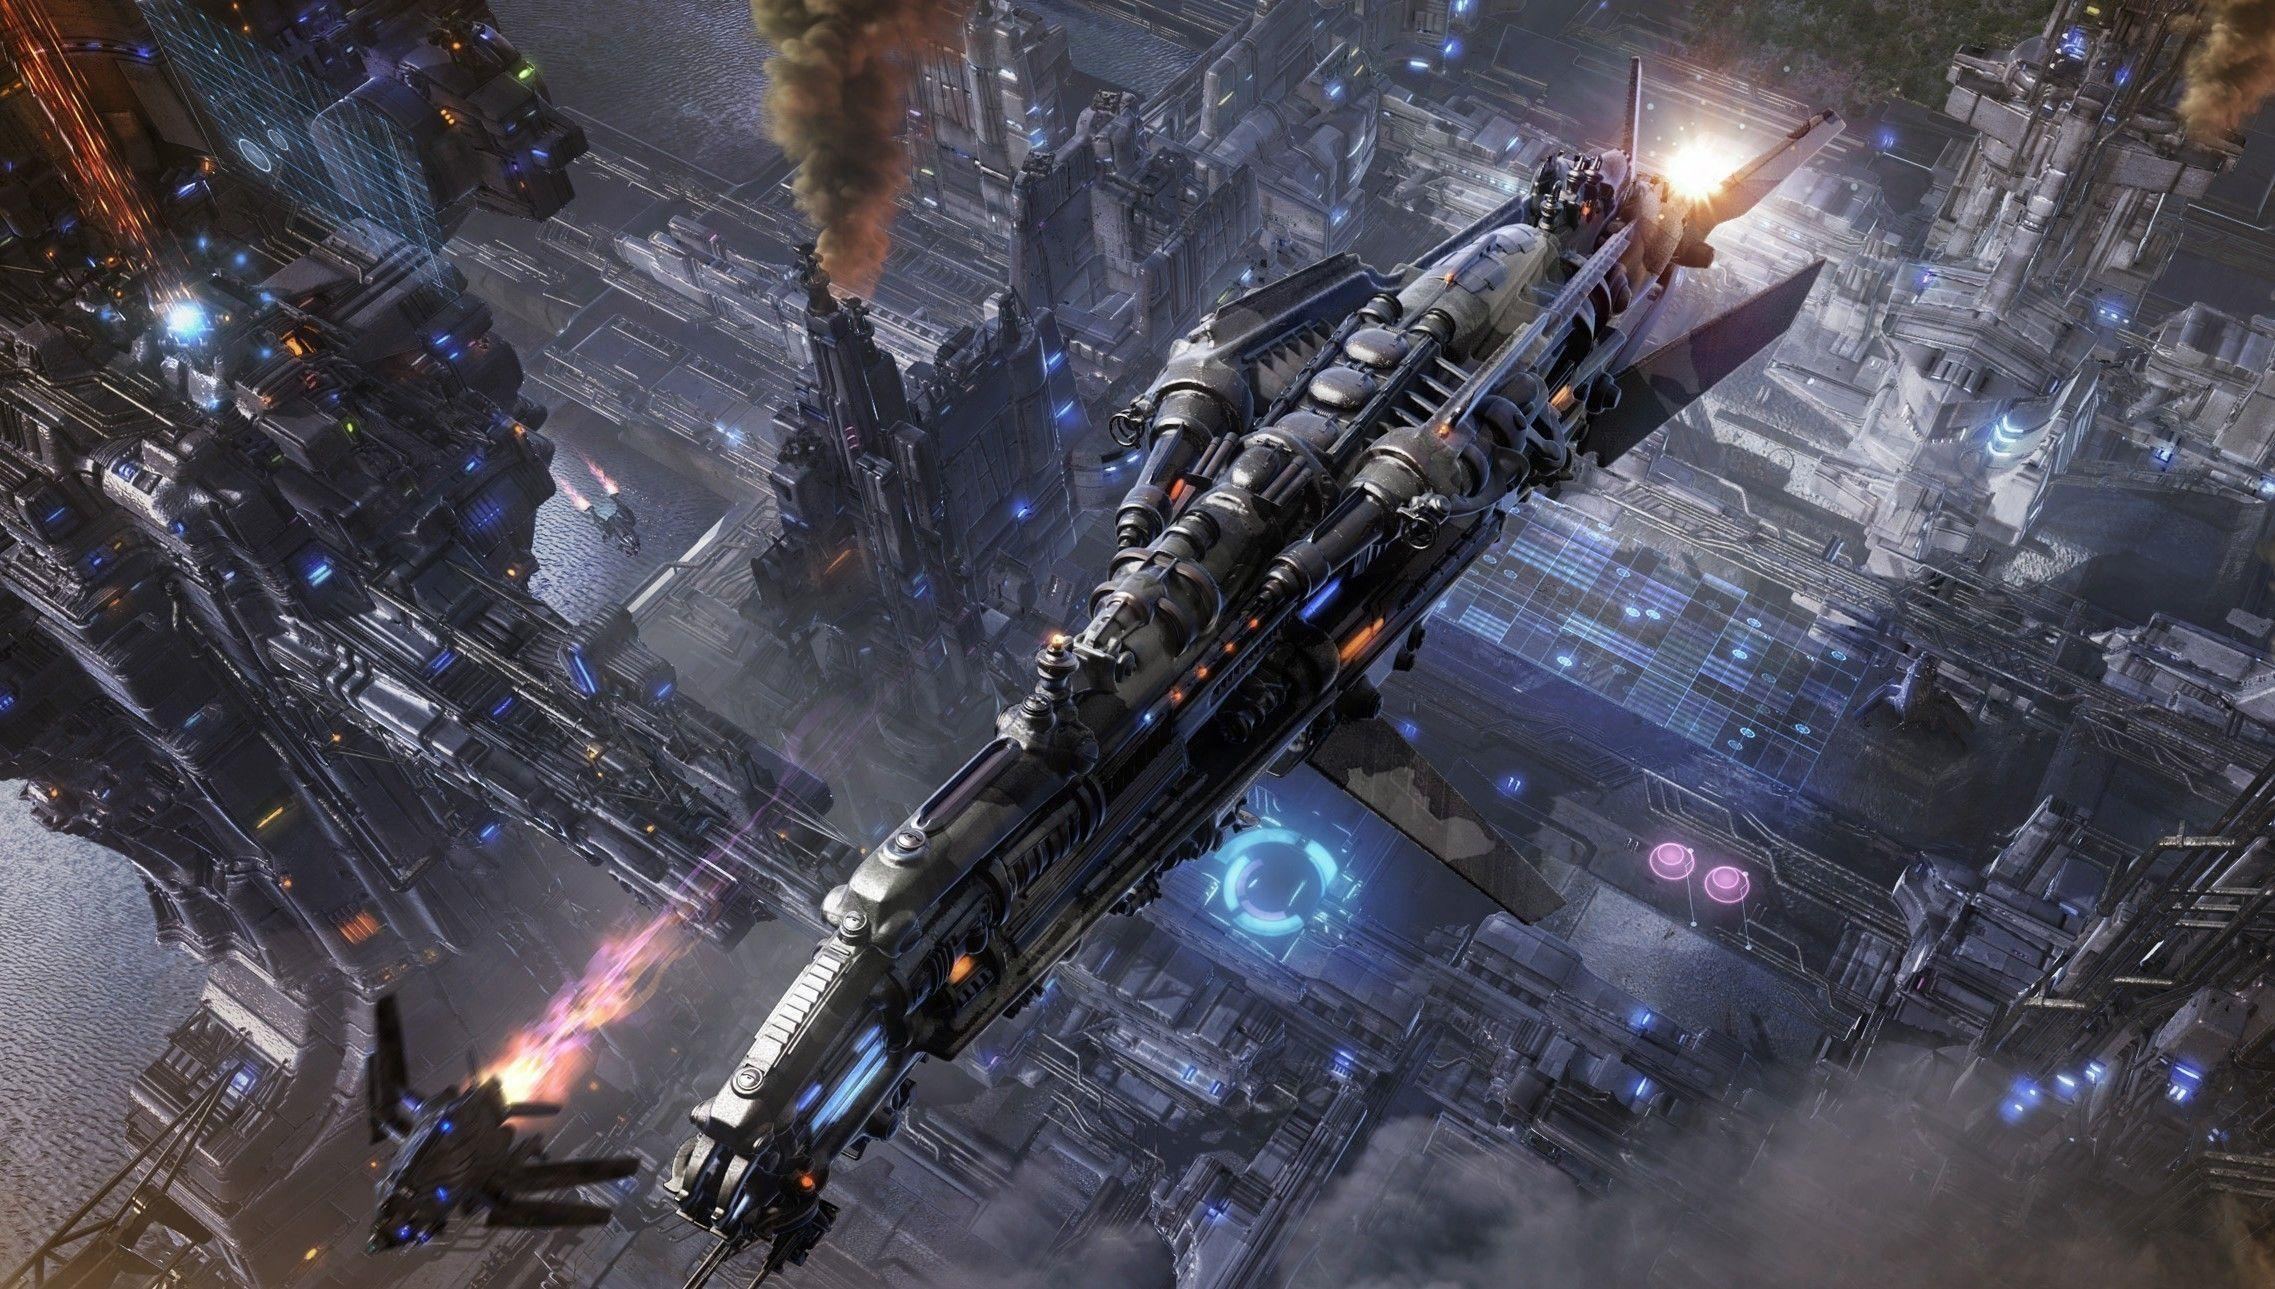 Spaceship Computer Wallpapers Desktop Backgrounds 2275x1289 Id